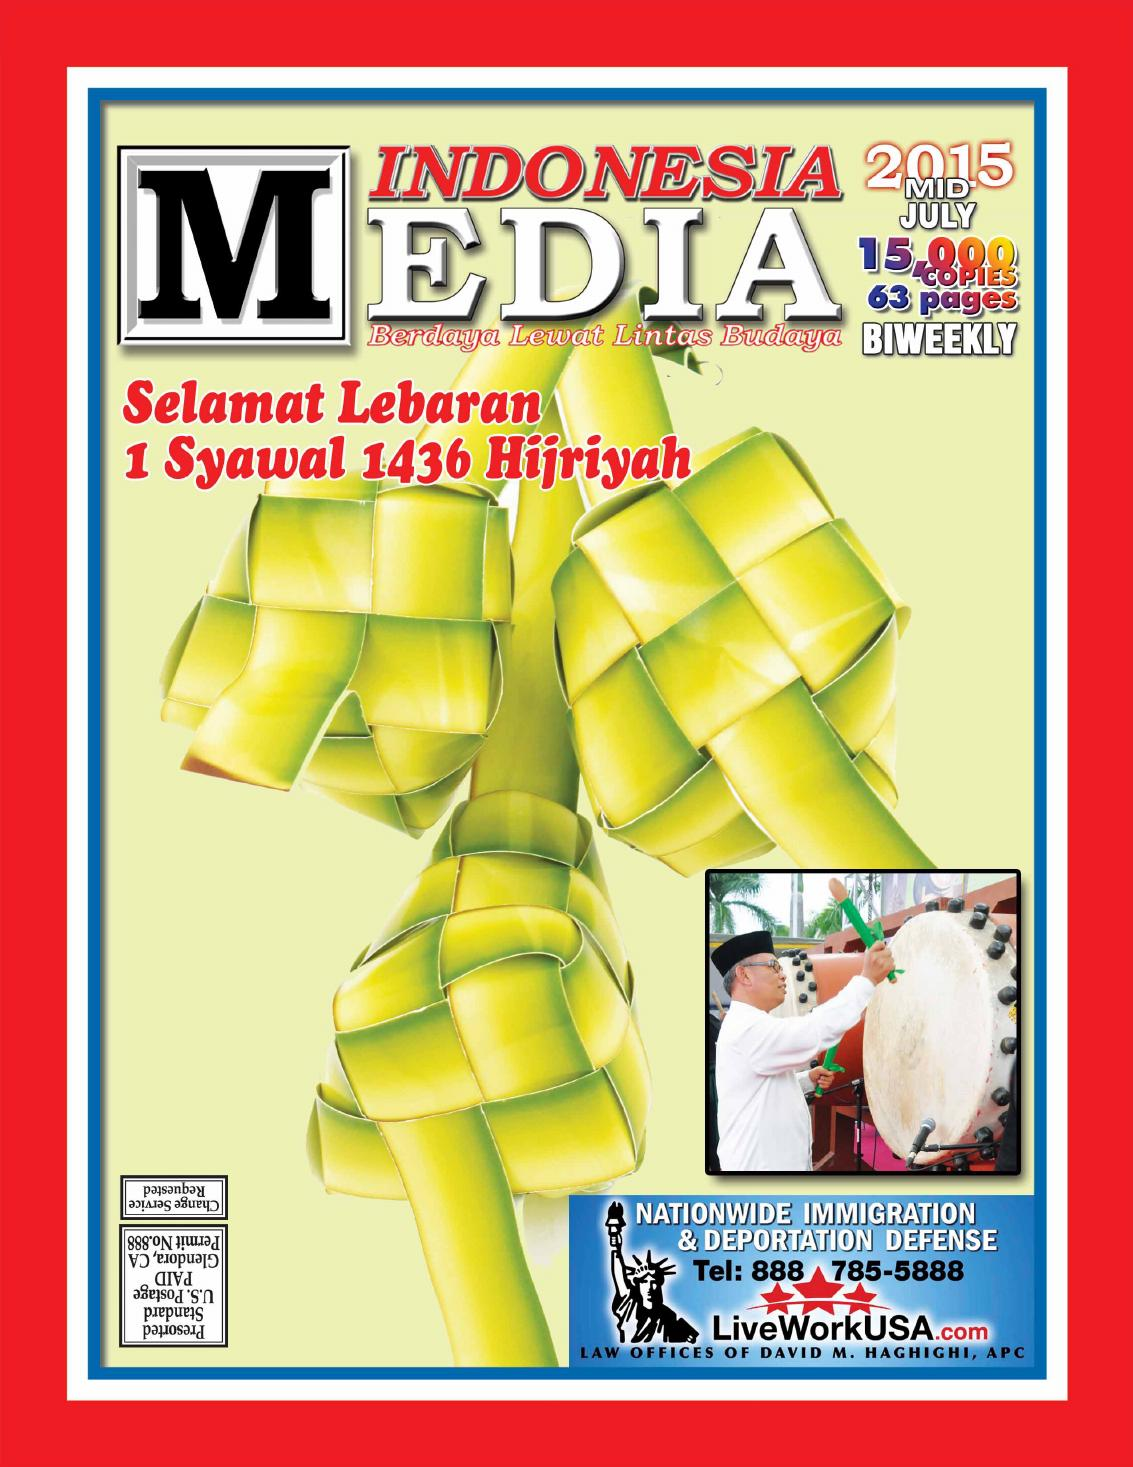 Indonesia Media Issue Mid July 2015 By Issuu Produk Ukm Bumn Batik Bulan Selendang Bolak Balik Beda Warna A